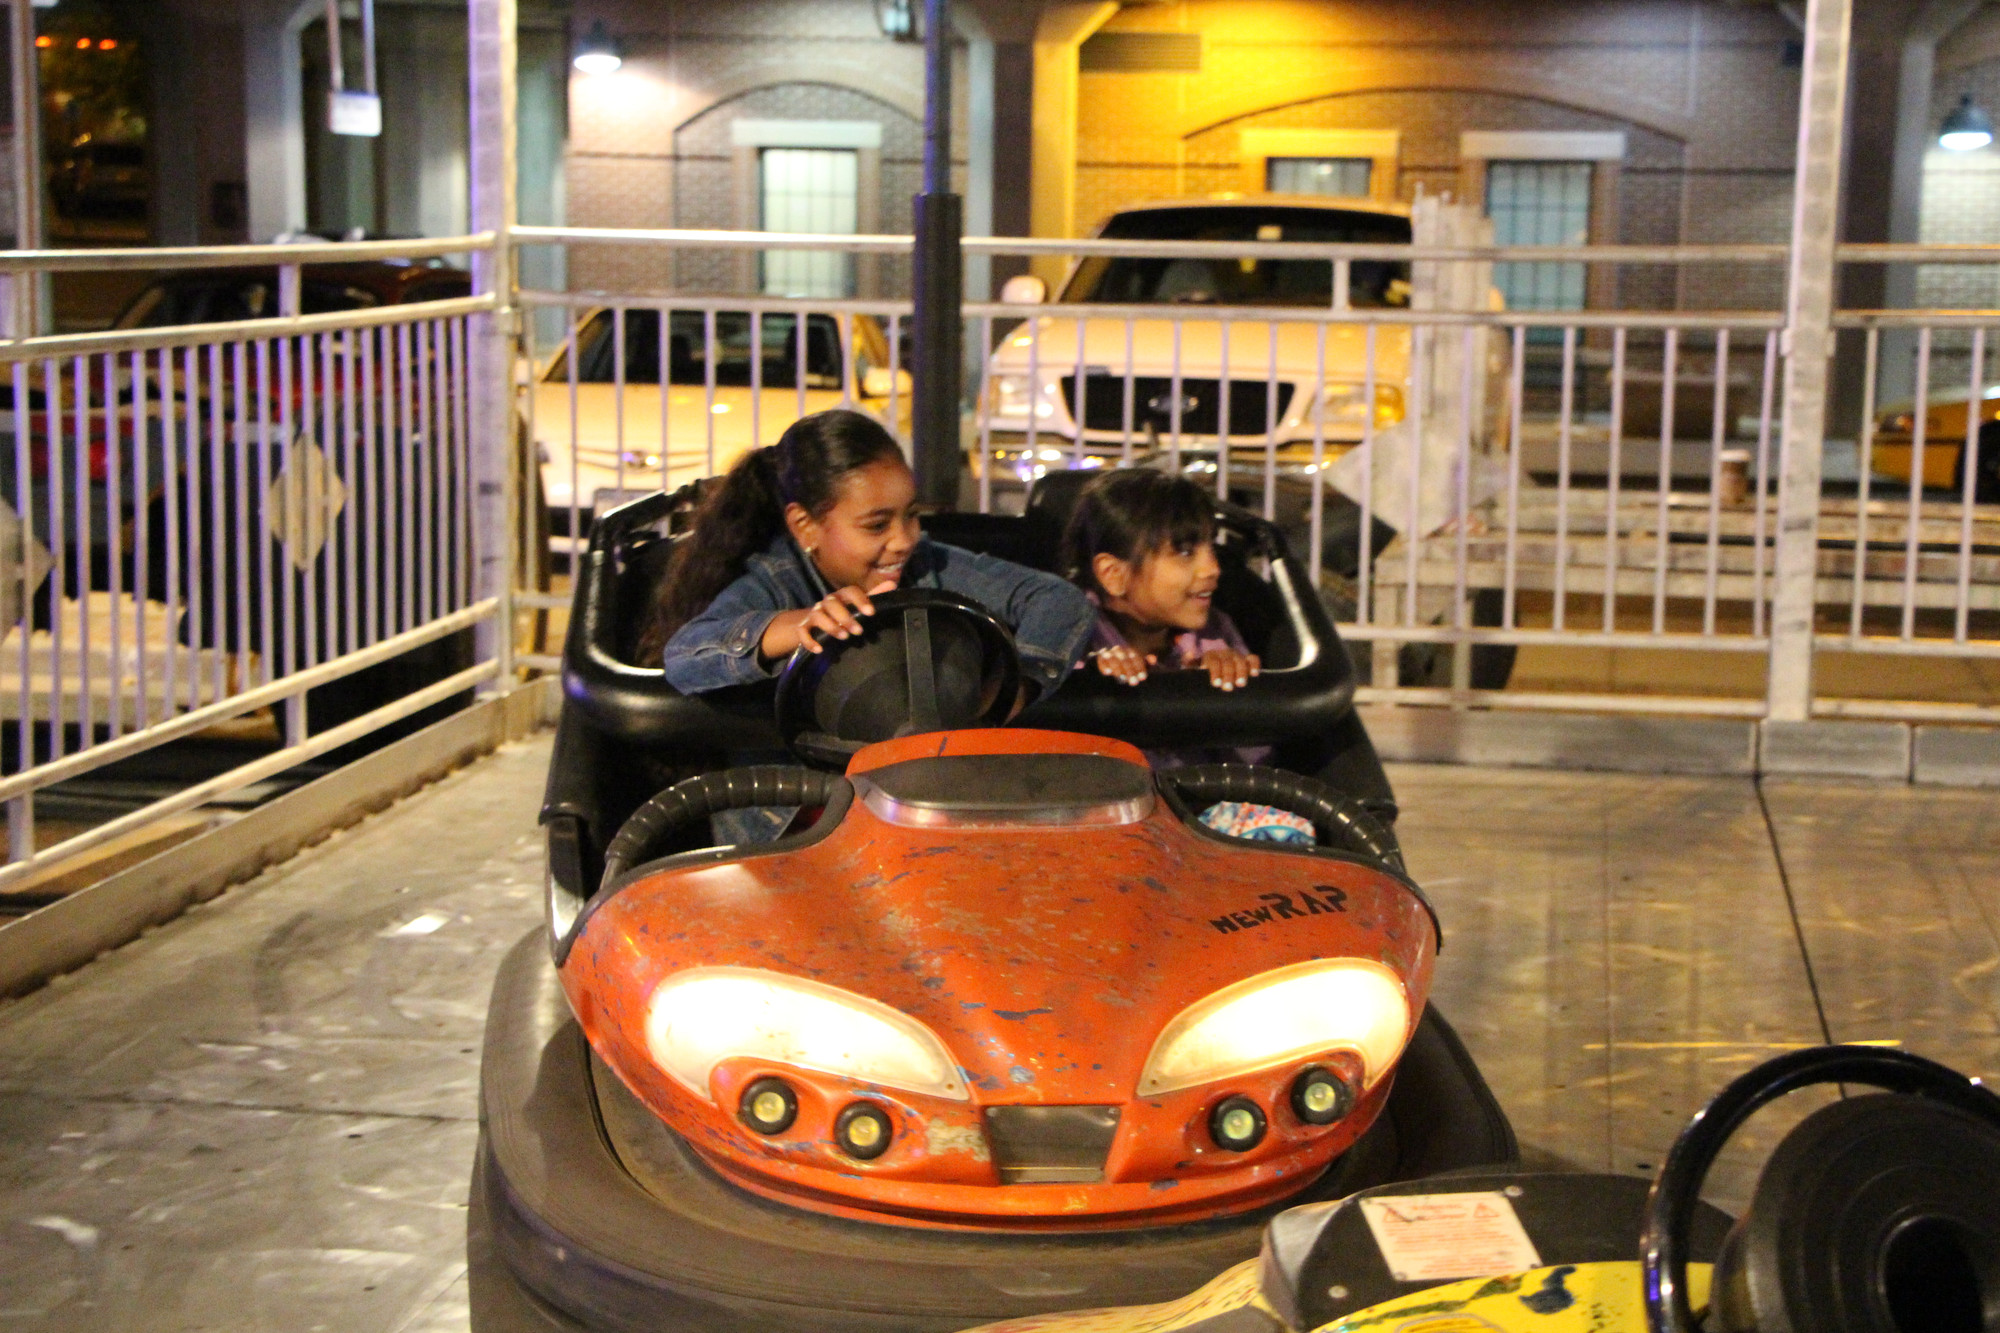 Sisters Valanie, 8, left, and Dezirae Wishropp, 6, drove bumper cars at the Baldwin Chamber of Commerce carnvial, which was held from May 29 to June 1 at the Long Island Rail Road station.